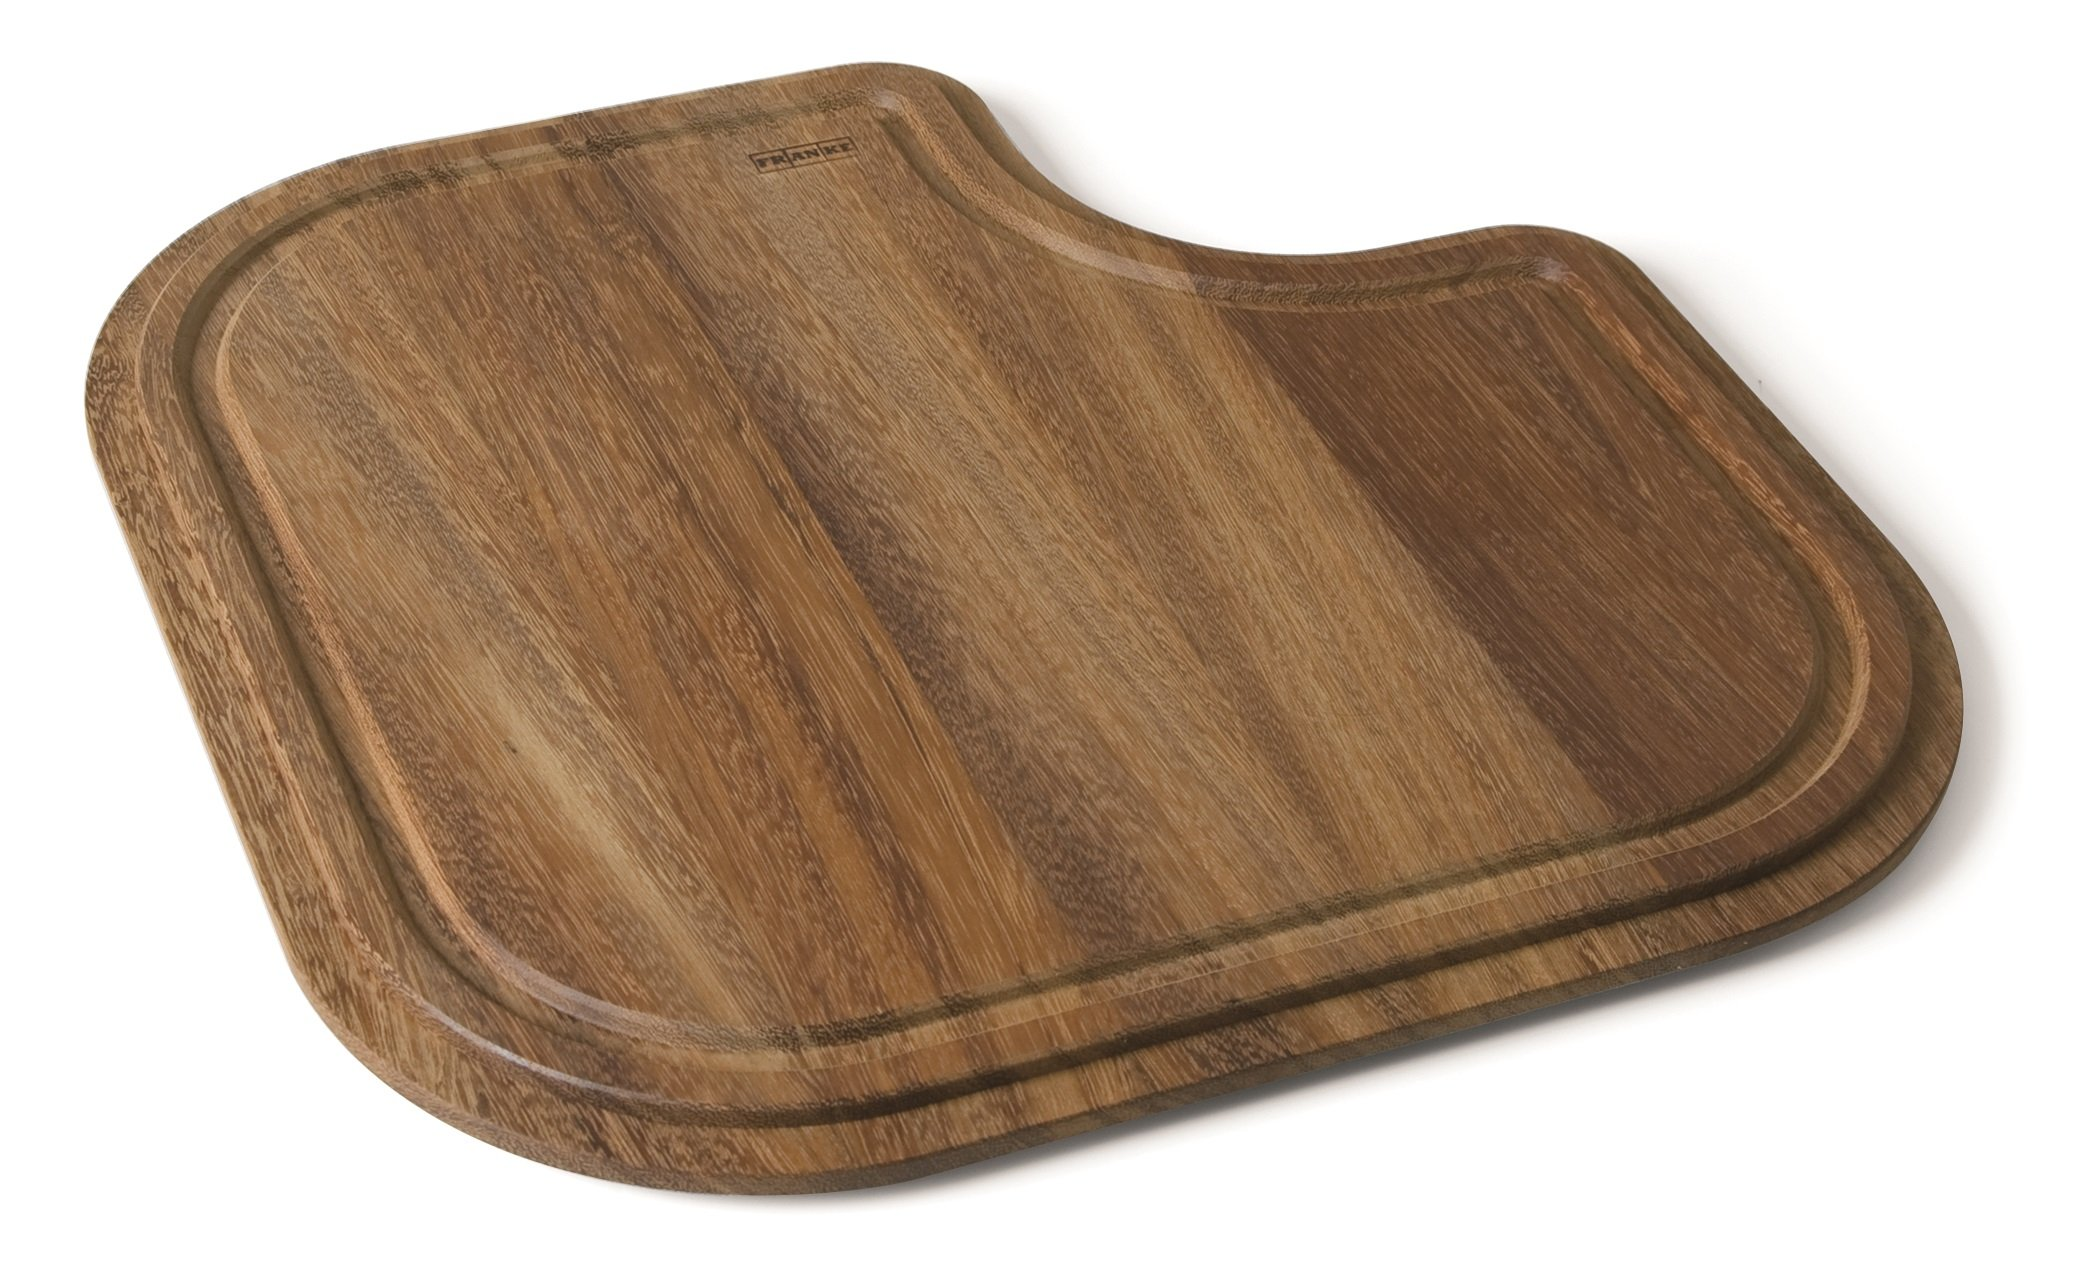 Franke EuroPro Solid Wood Cutting Board for GNX11016/GNX120 Sinks